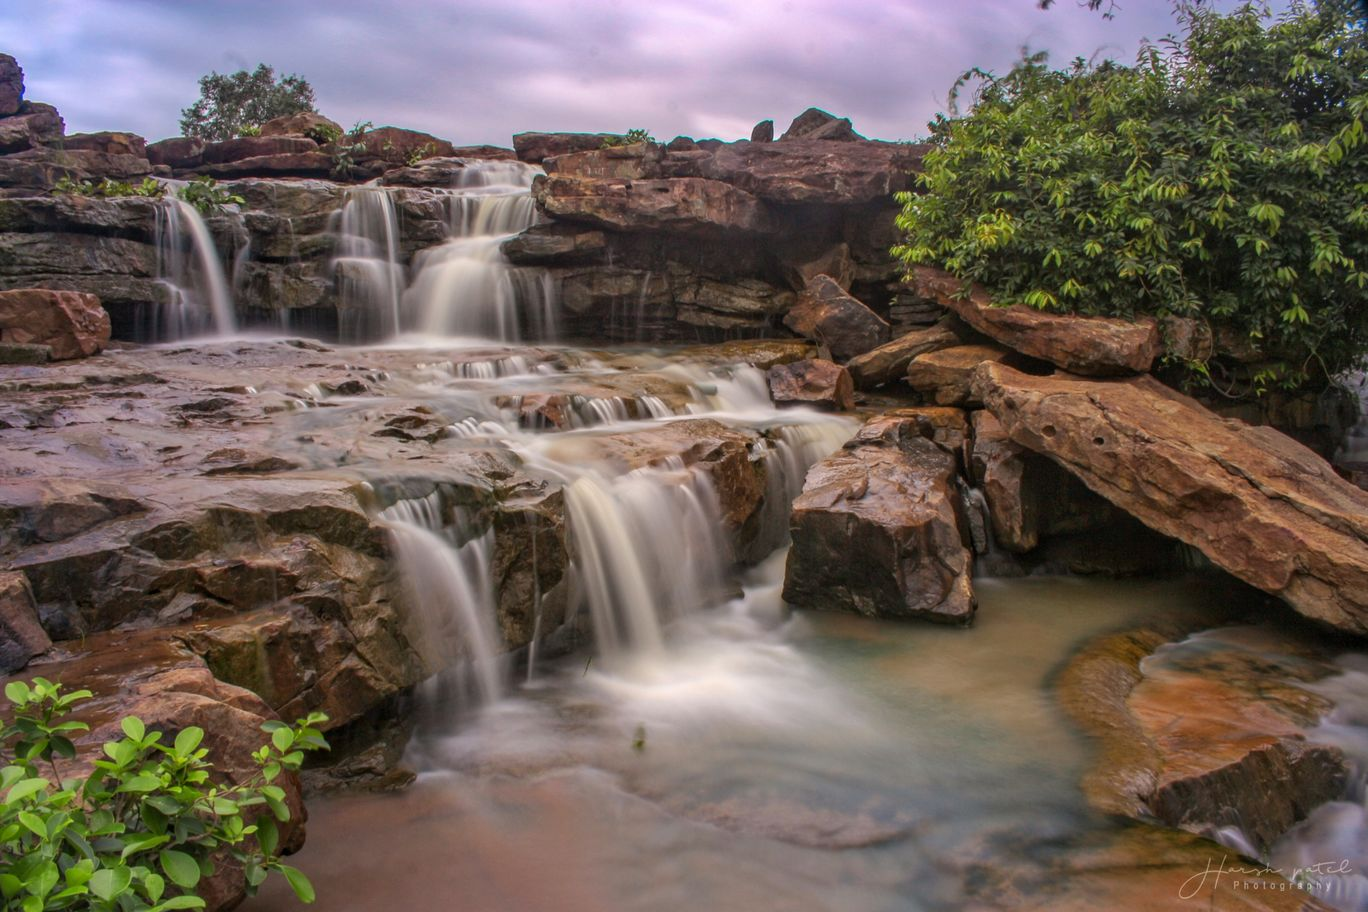 Photo of Chitradhara Waterfall By Harsh Patel